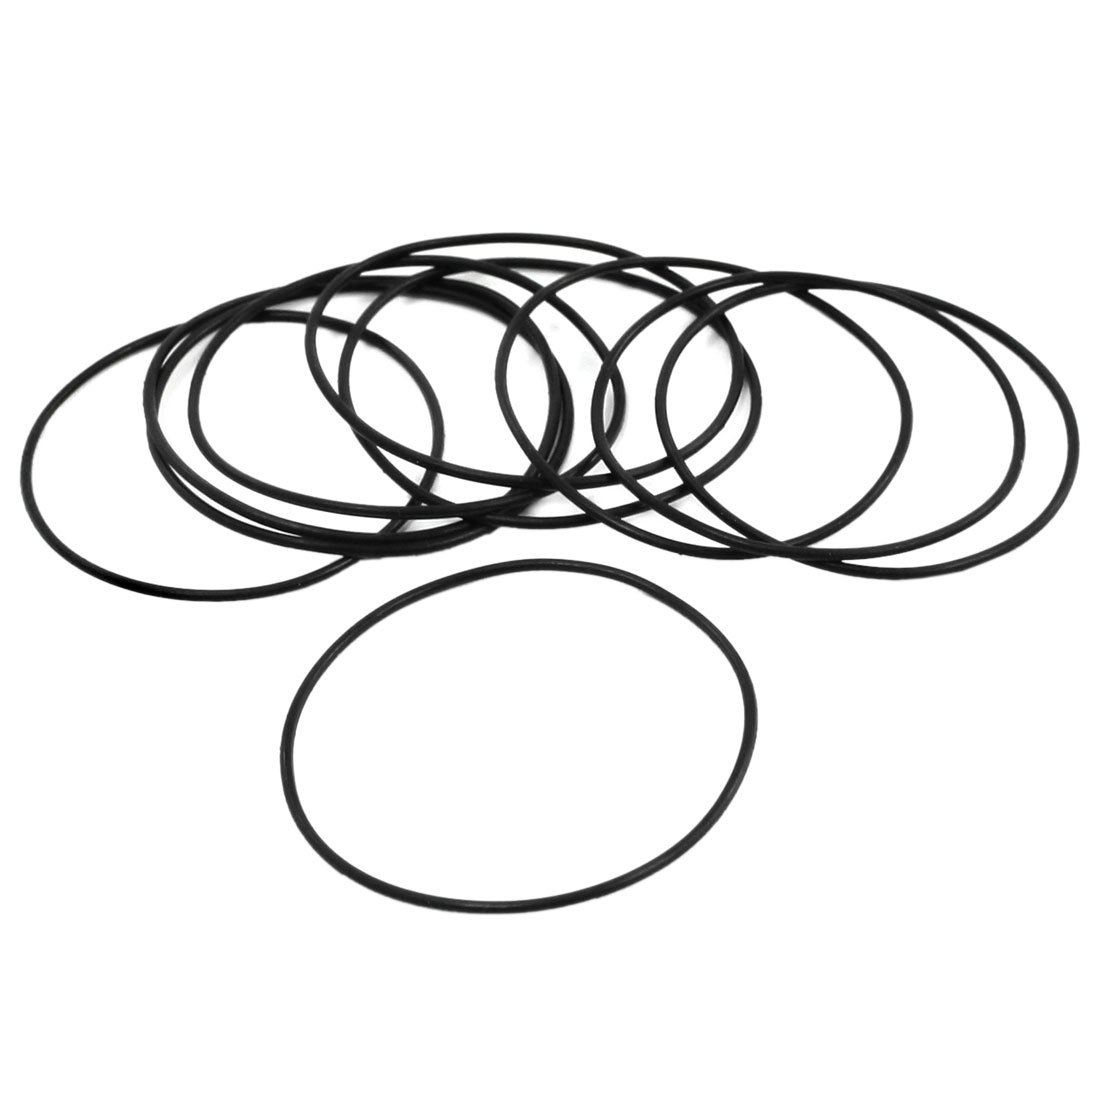 uxcell 5Pairs 35mm x 33mm x 1mm Rubber O Ring Oil Seal Gasket Replacement a14022100ux0172